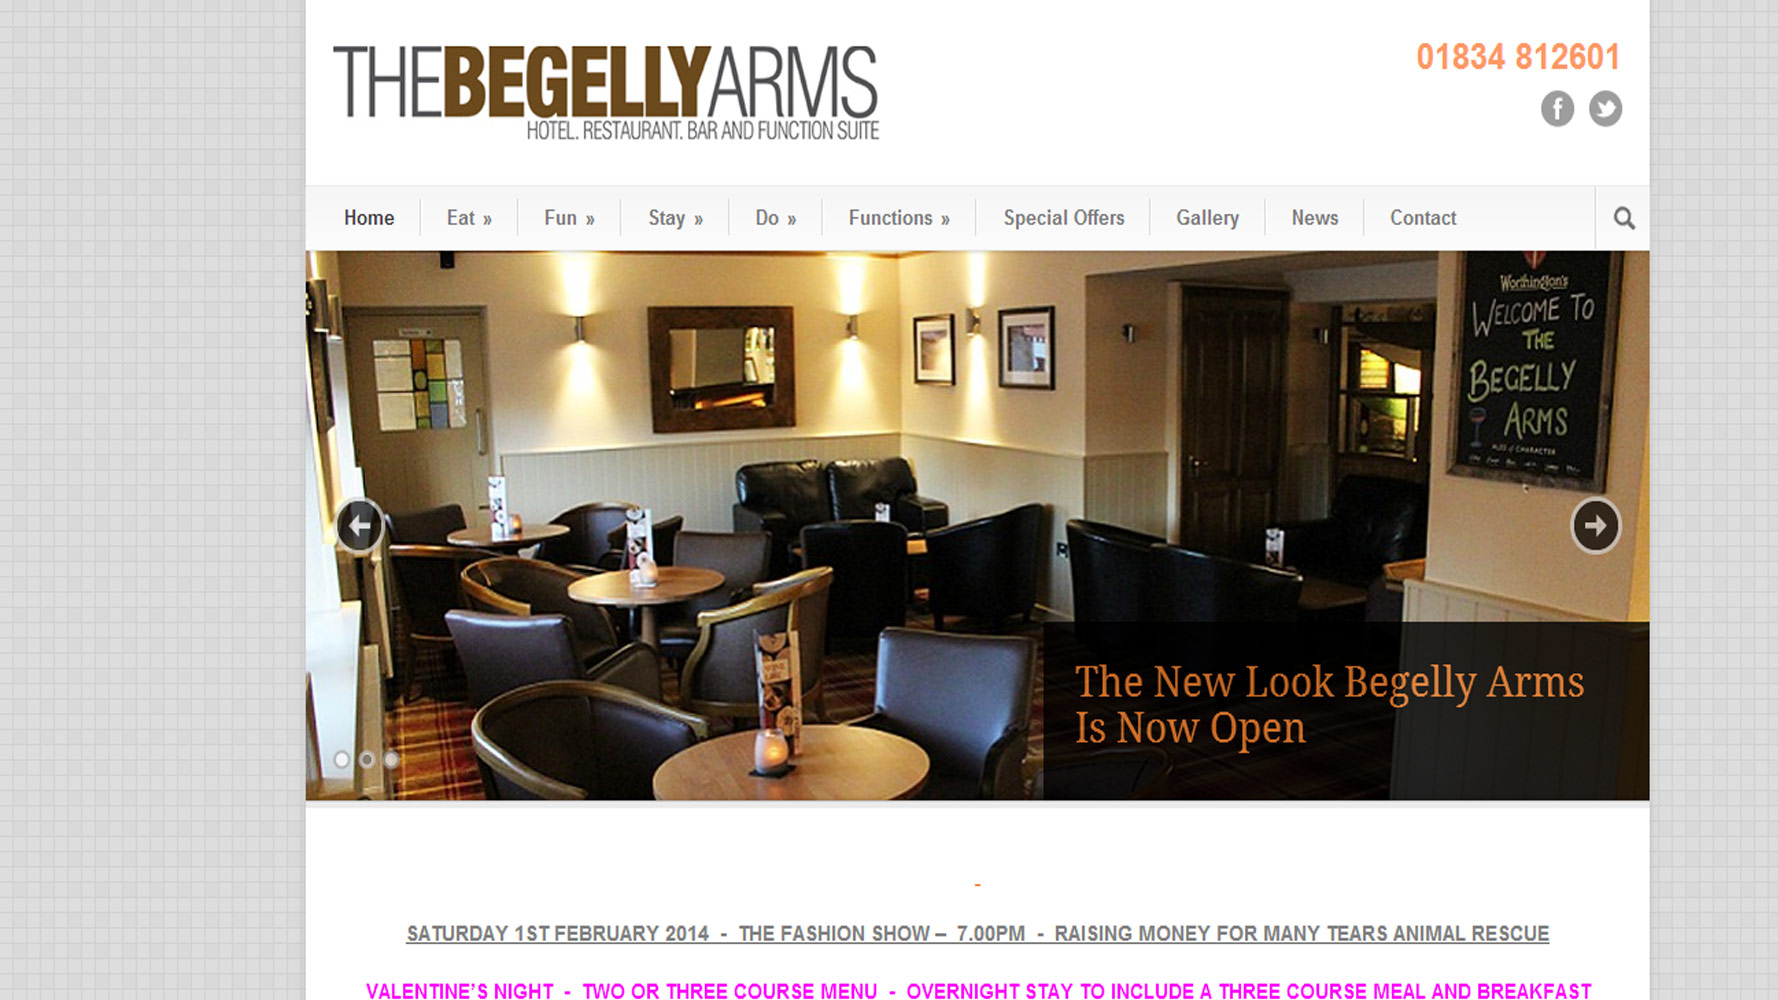 Begelly Arms Homepage designed and created by Web Adept